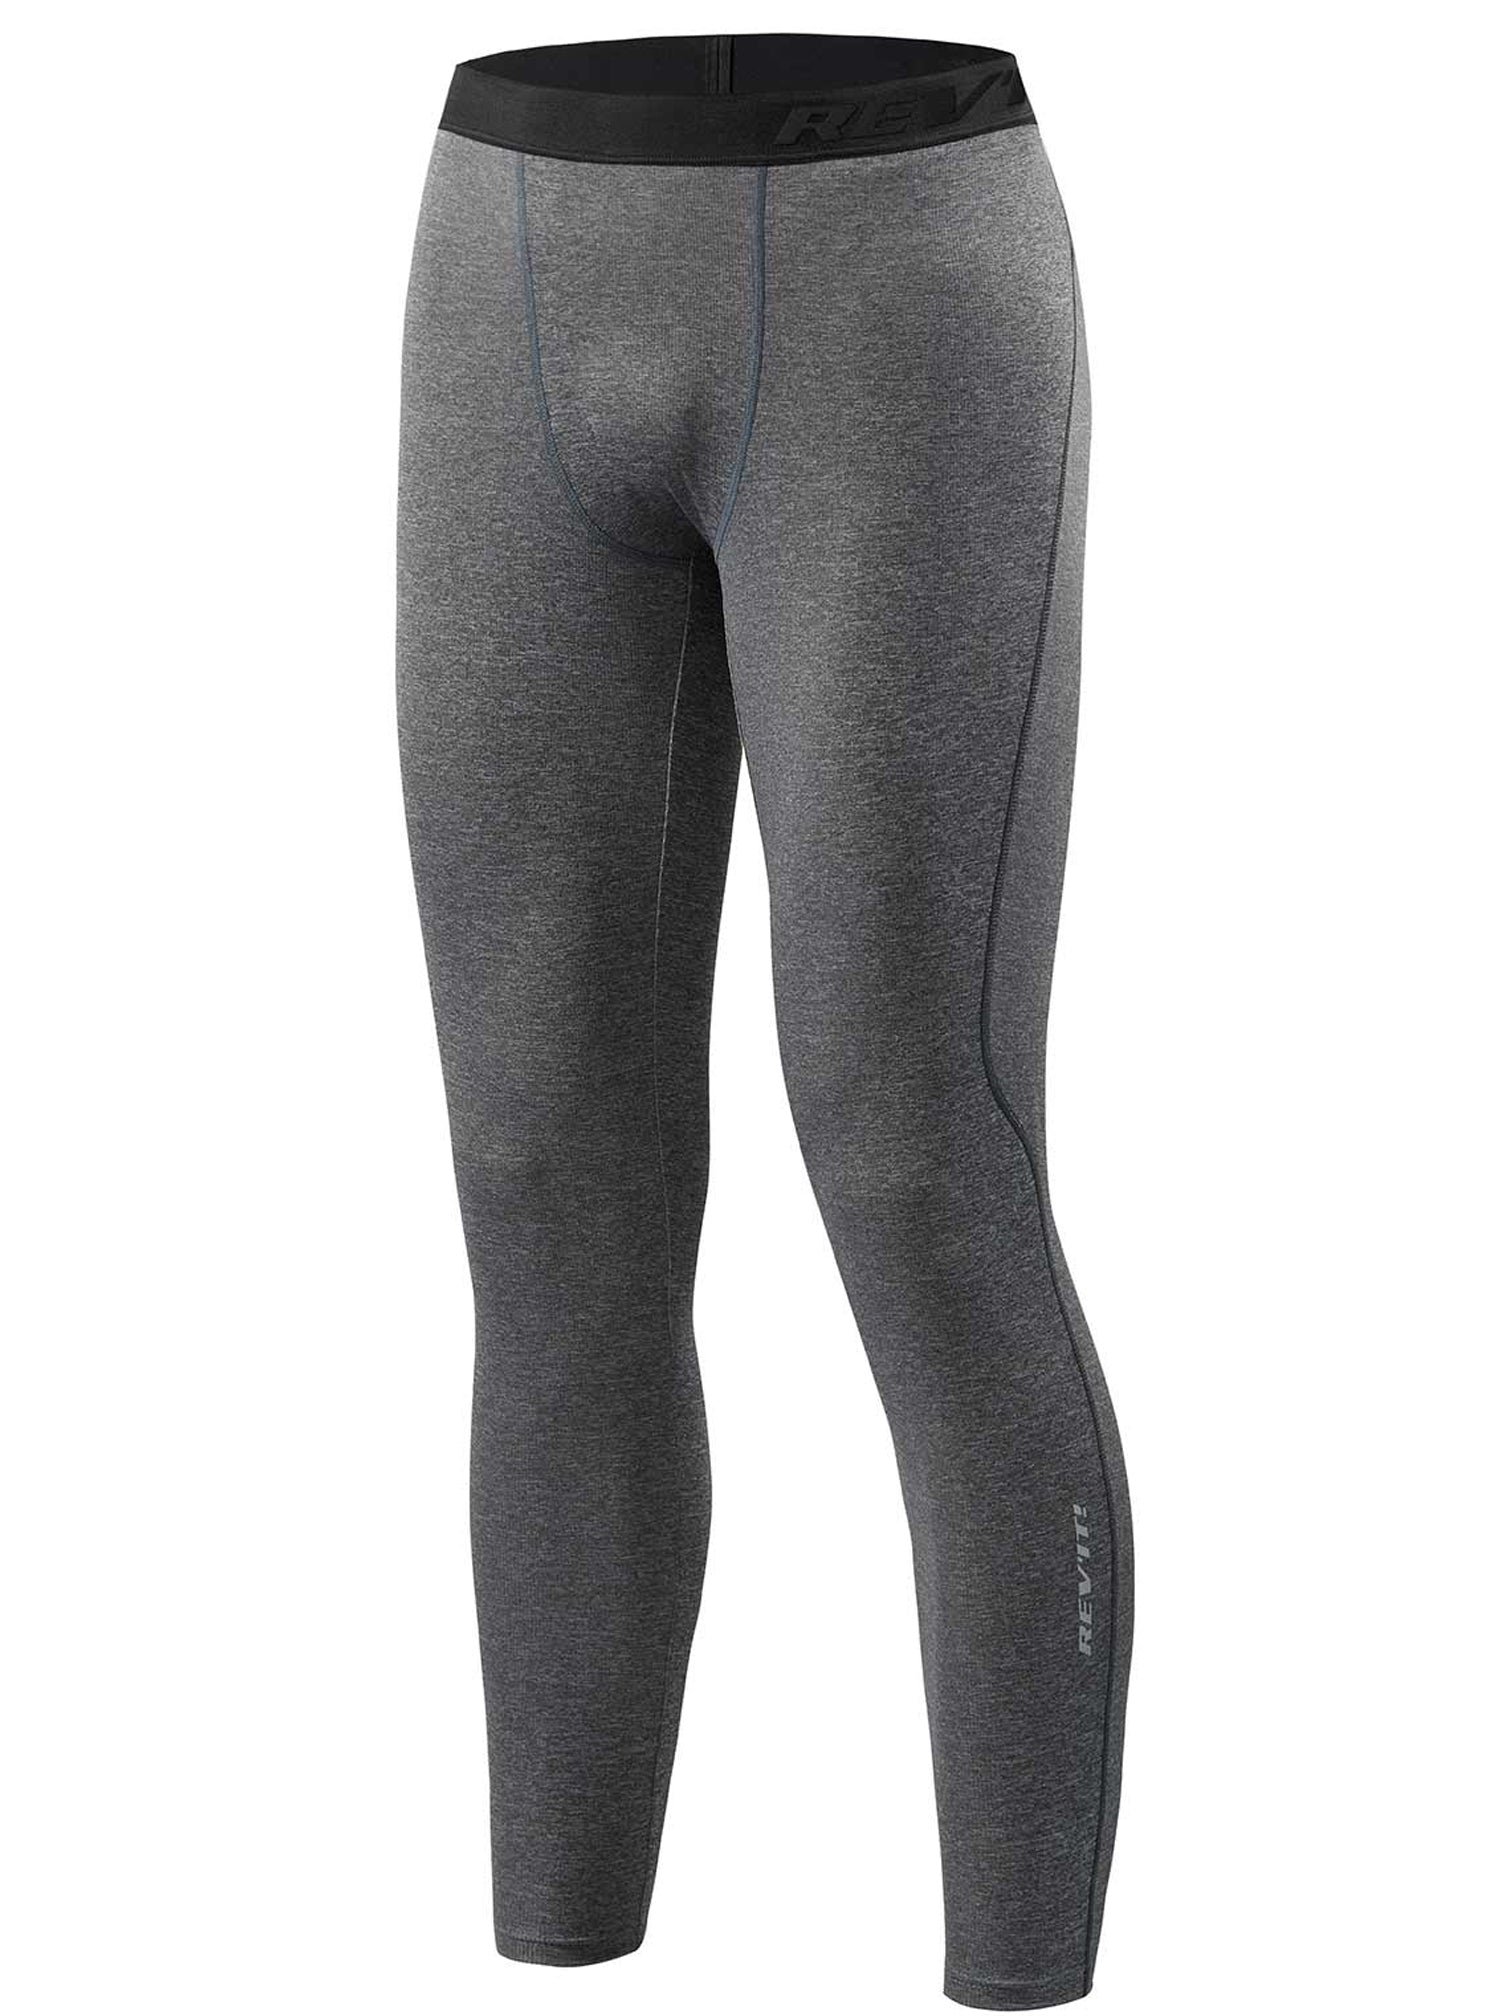 REV'IT! Sky LL Men's Base Layer Pants - 421 Moto Gear